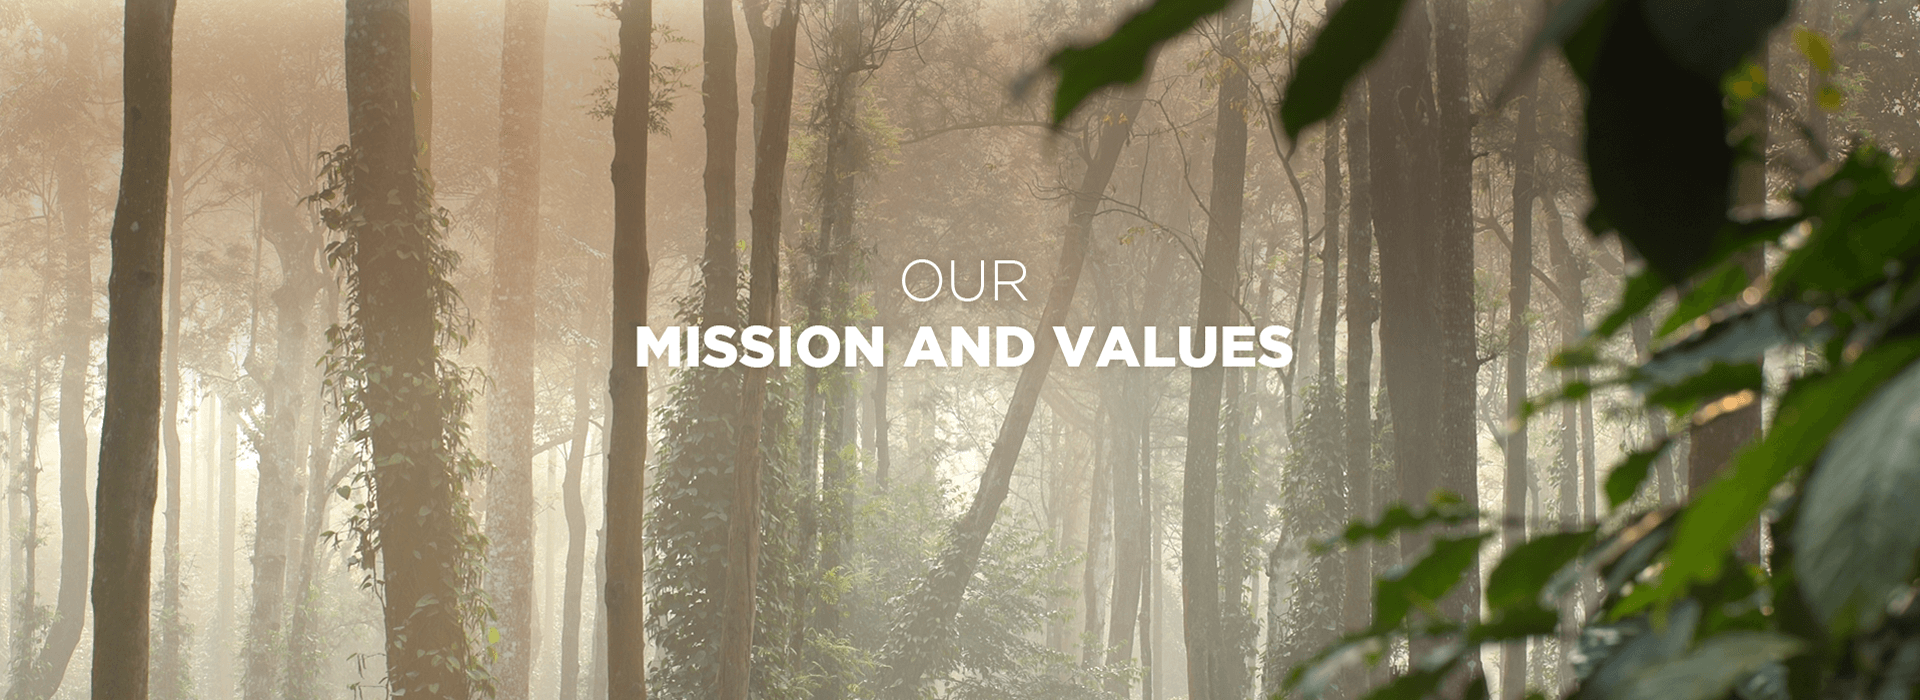 Our Mission and values  - Desktop - Tata Coffee